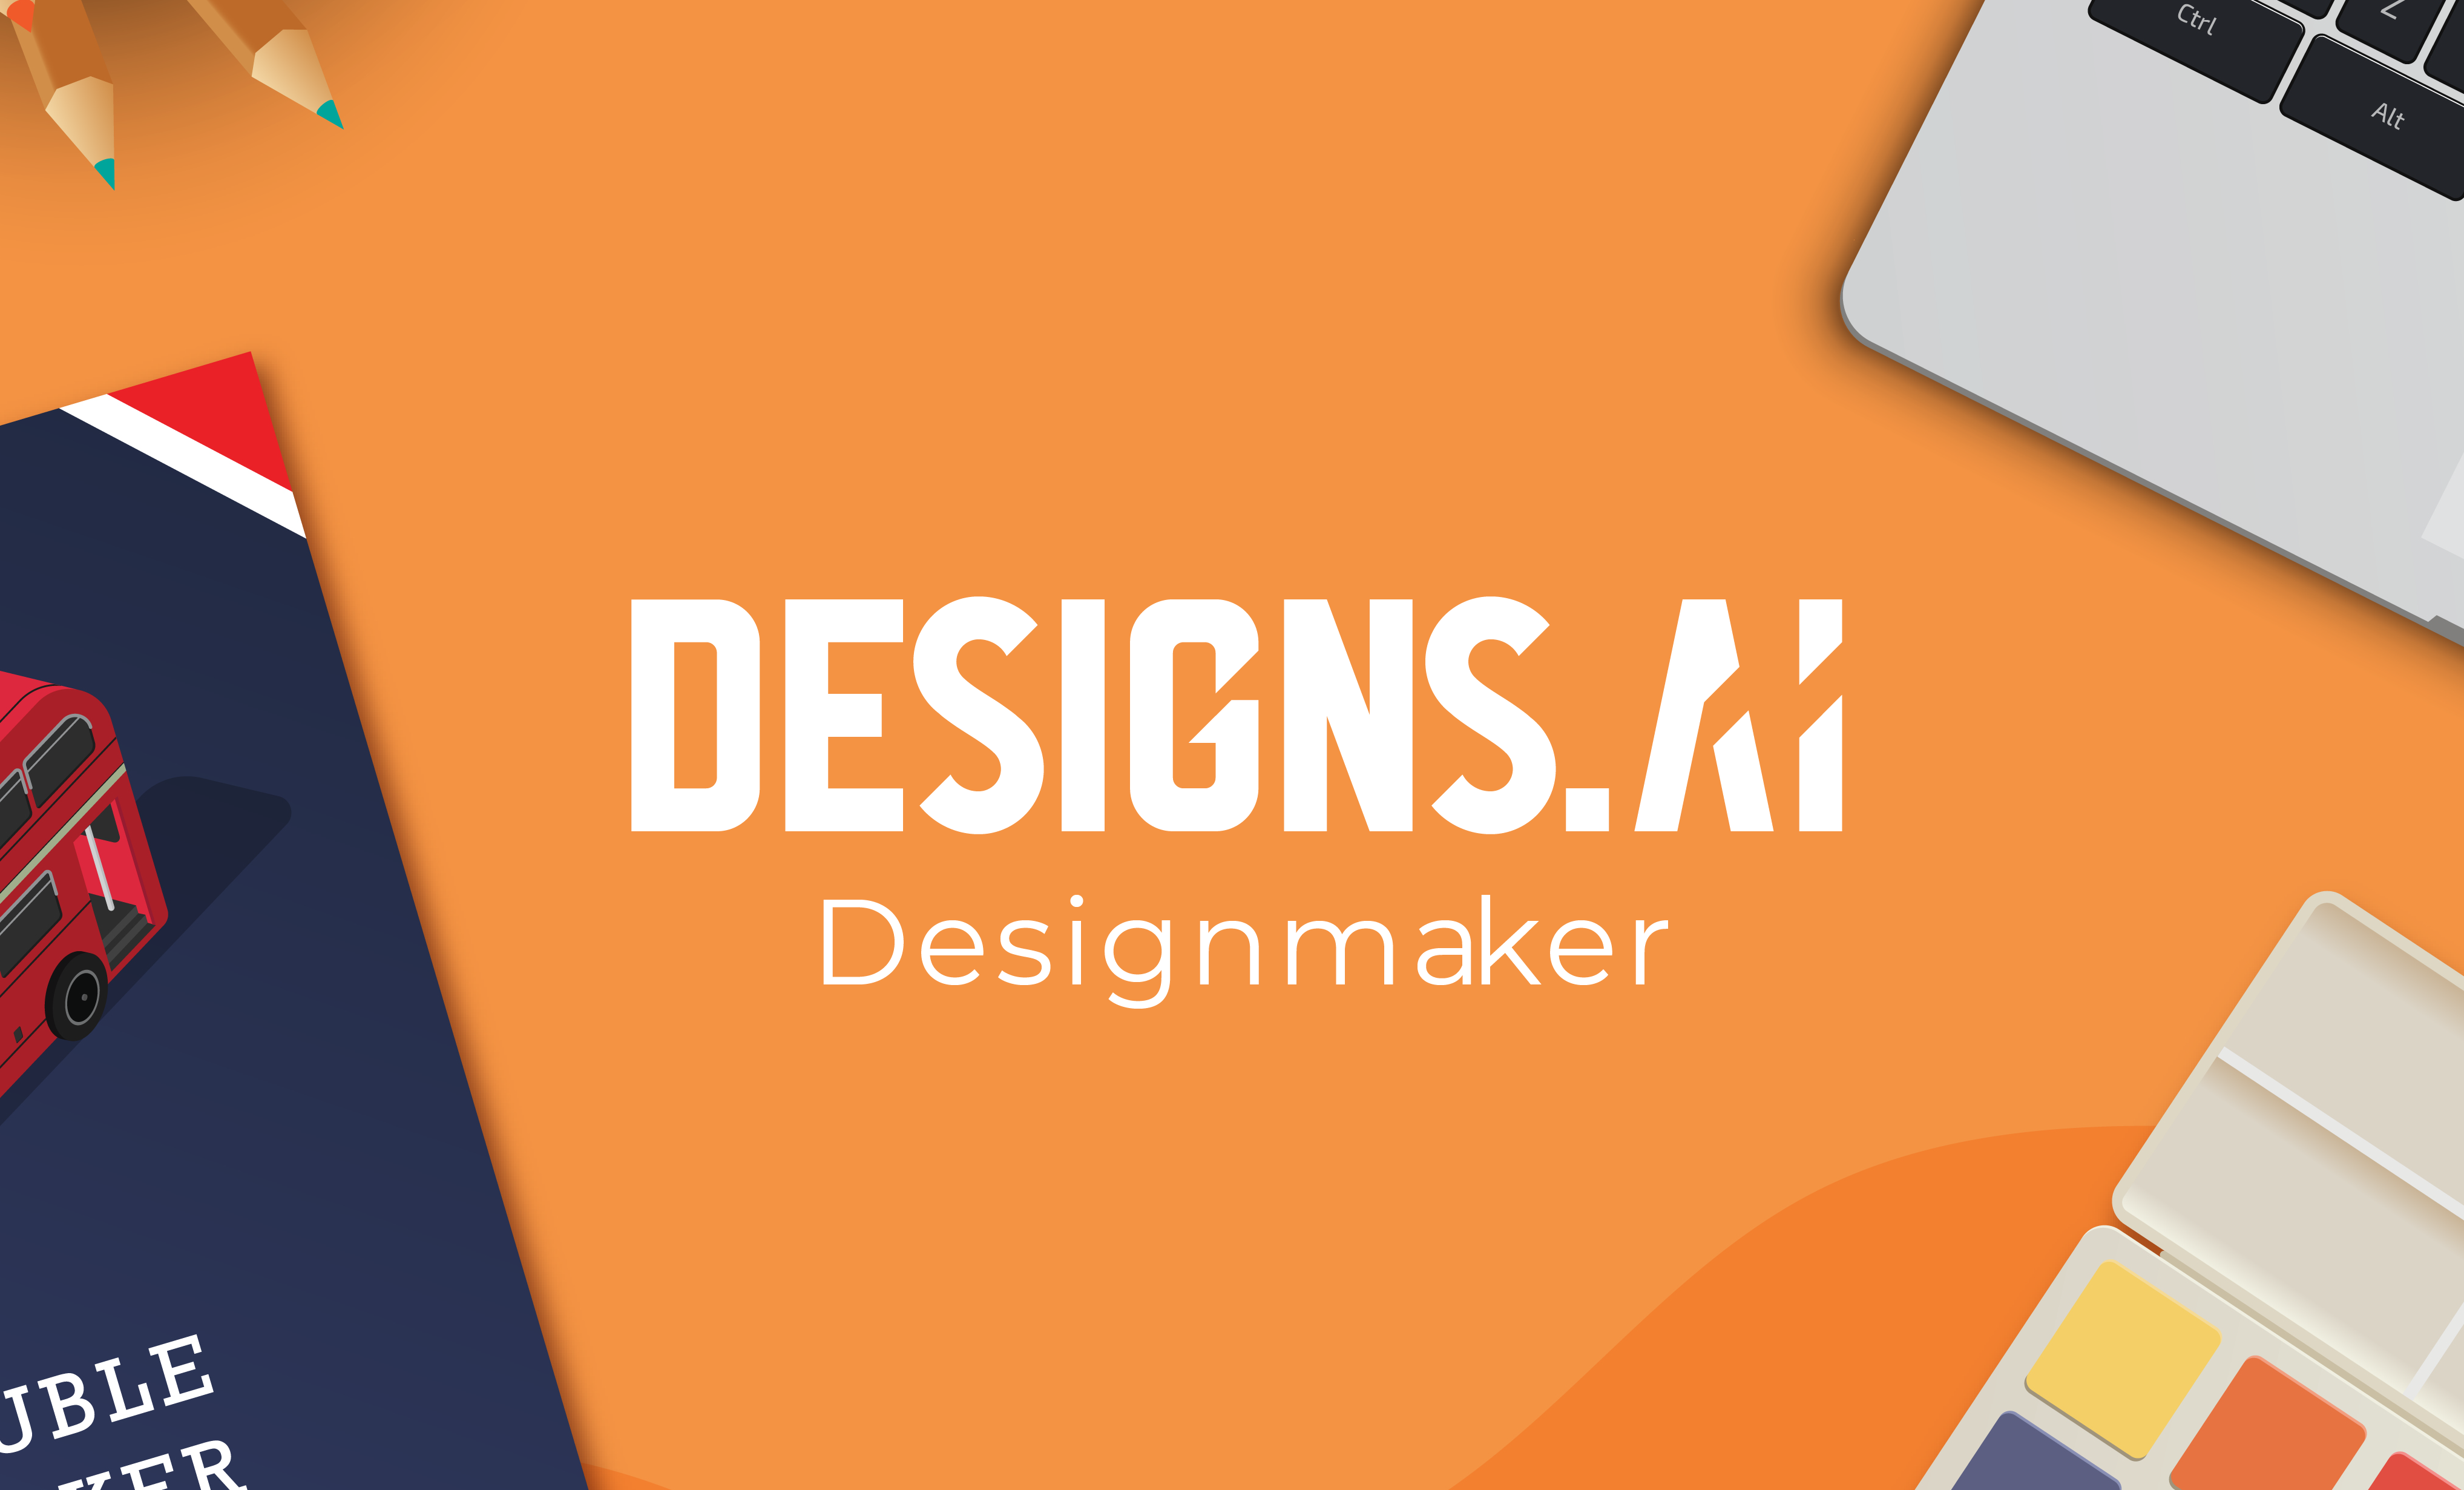 One of the best graphic design tool - Designmaker by Designs.ai